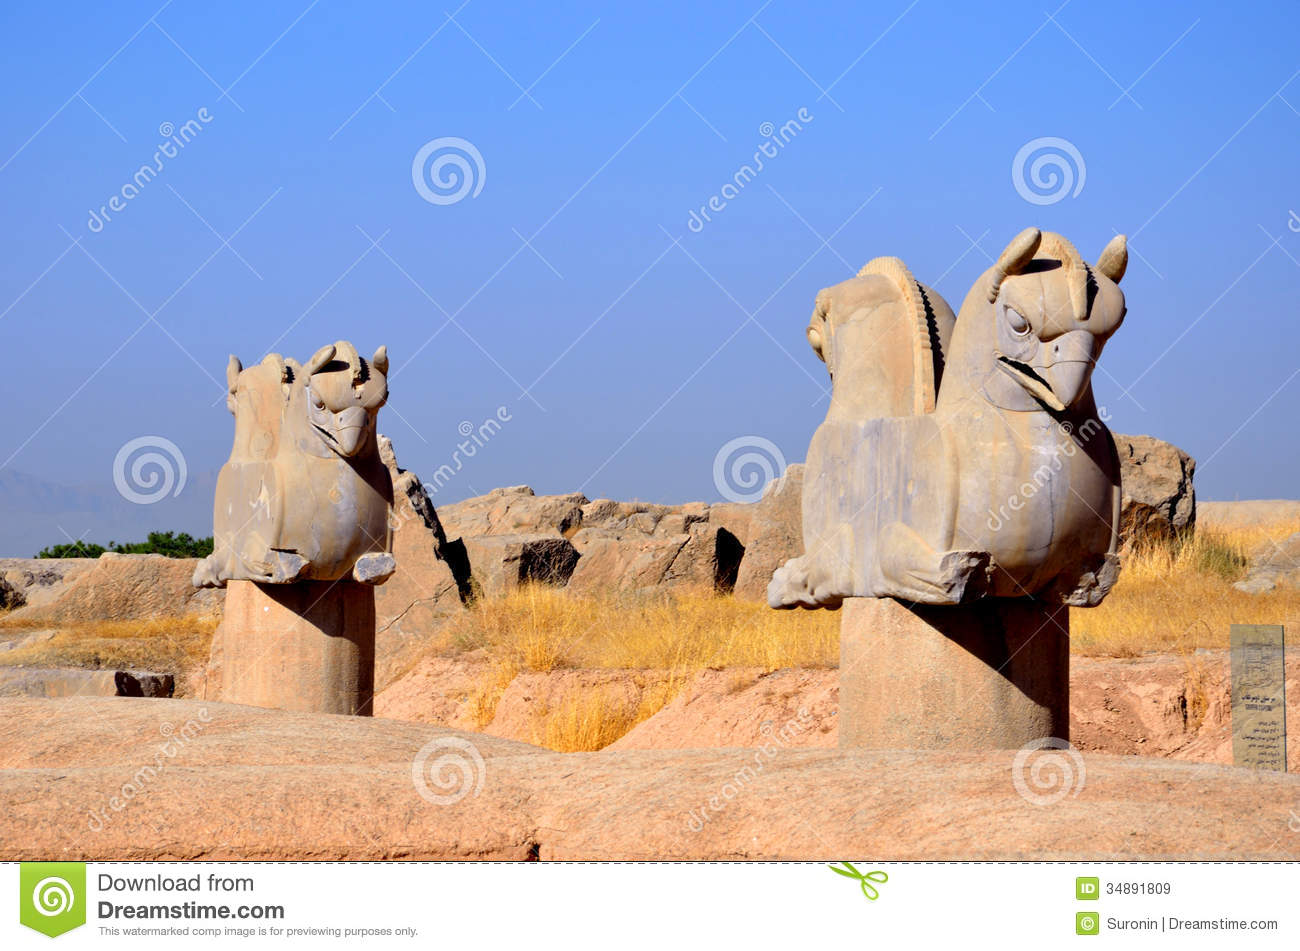 persepolis and western symbols The bull is also a symbol of power in ancient persia and is seen throughout persepolis on top of columns and guarding gates the magnificent palace complex at persepolis was founded by darius the great around 518 bc, although more than a century passed before it was finally completed.